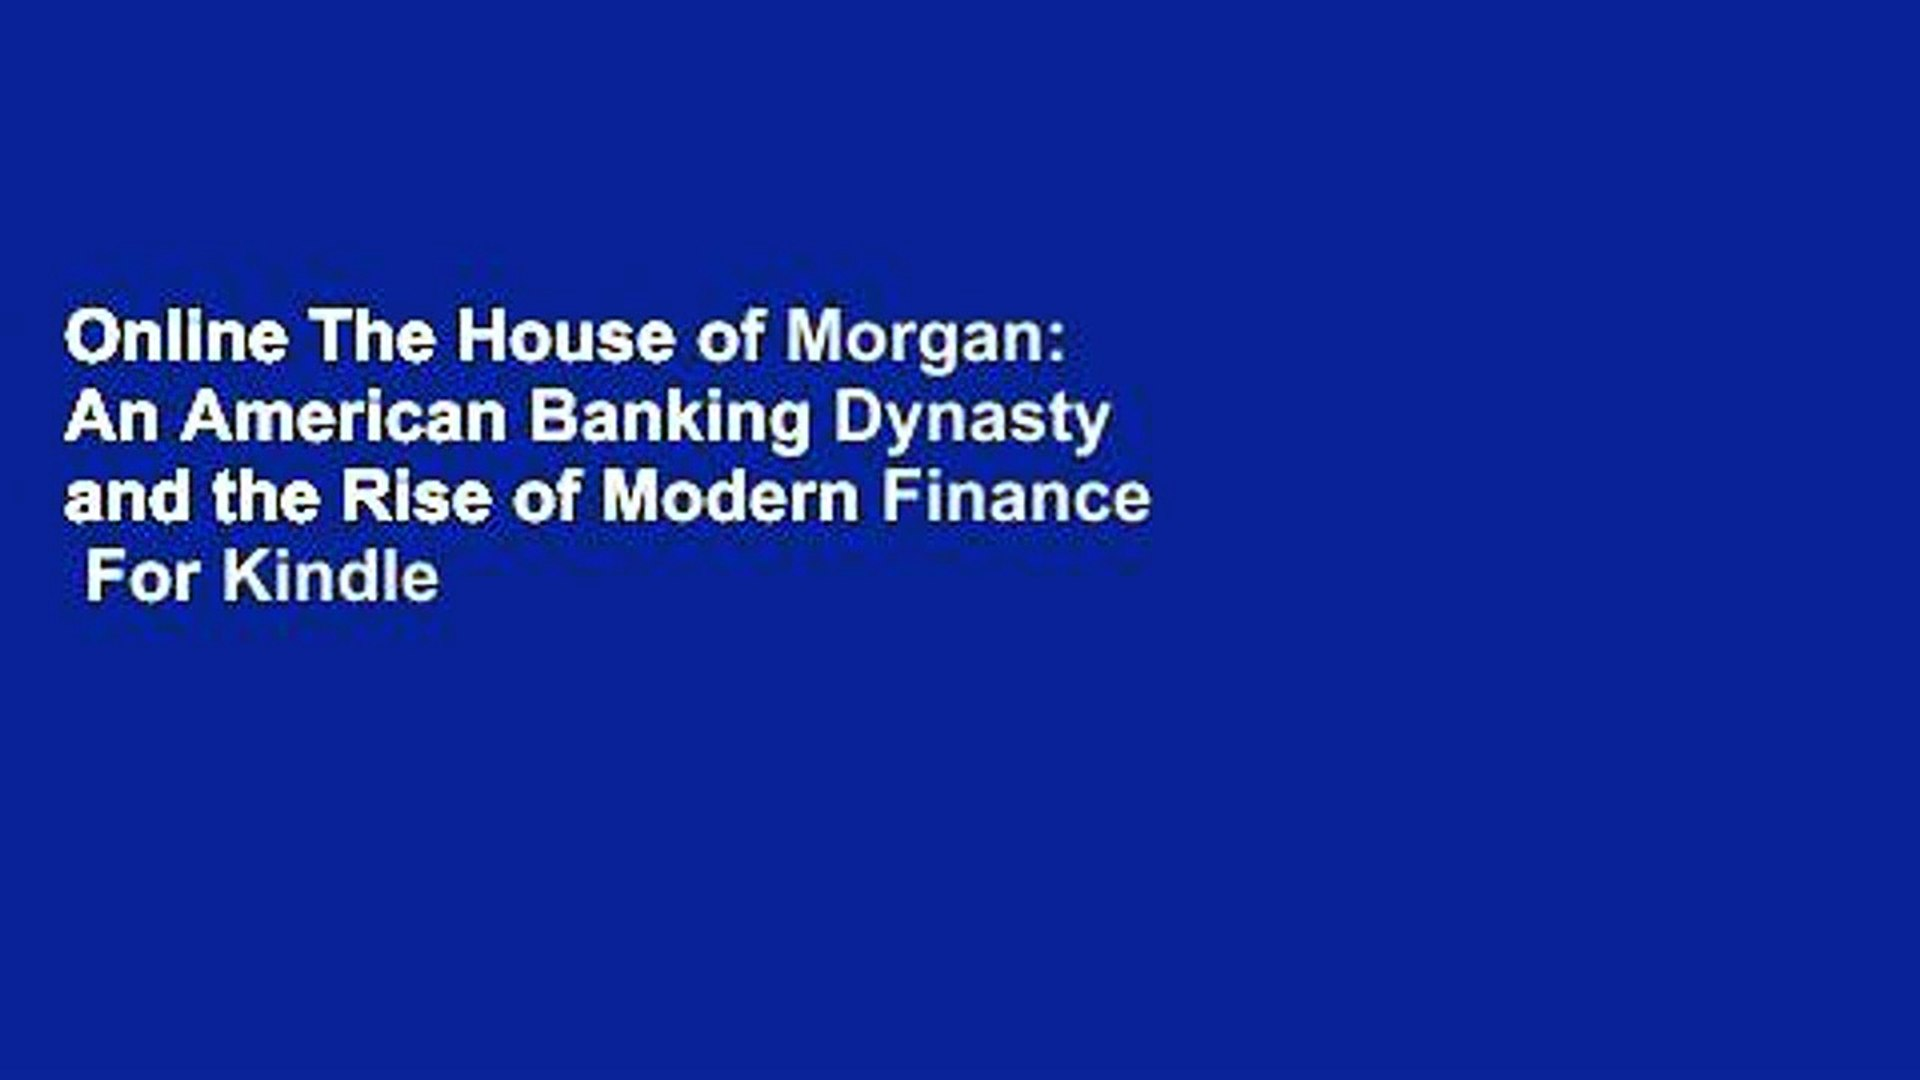 Online The House of Morgan: An American Banking Dynasty and the Rise of Modern Finance  For Kindle